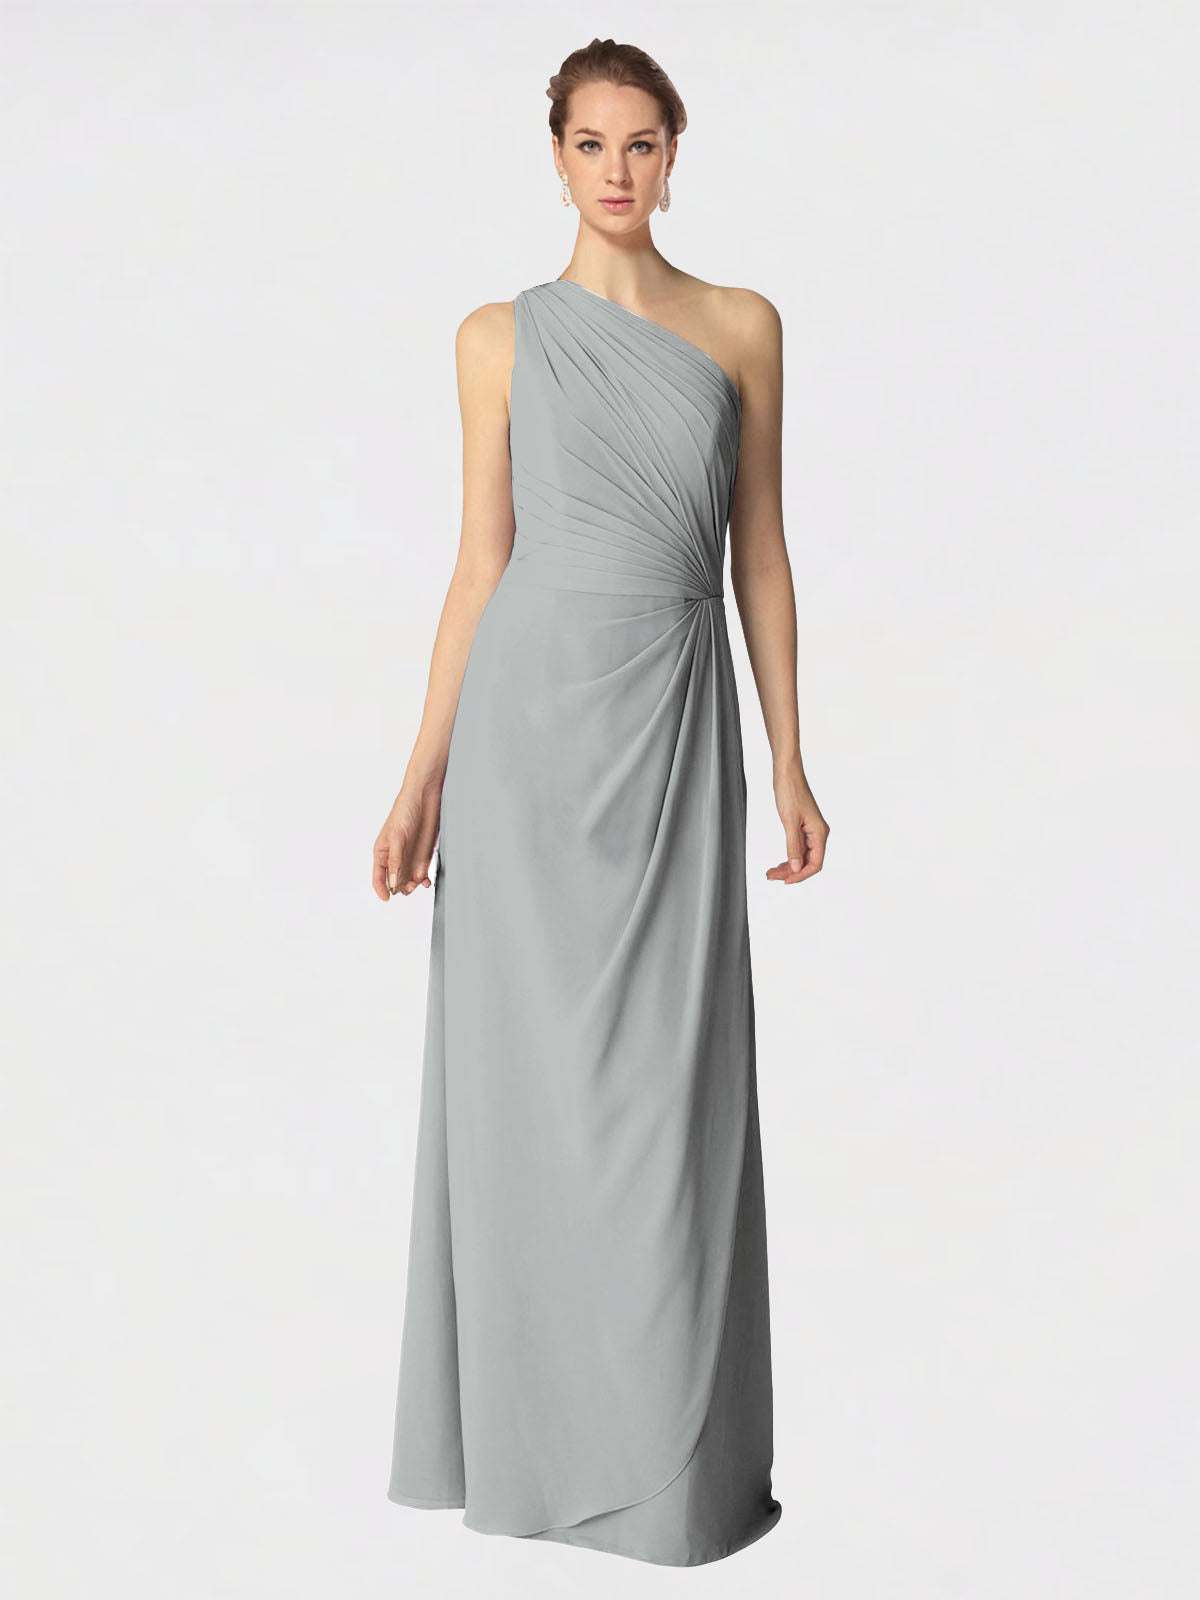 Long A-Line One Shoulder Sleeveless Silver Chiffon Bridesmaid Dress Aurora